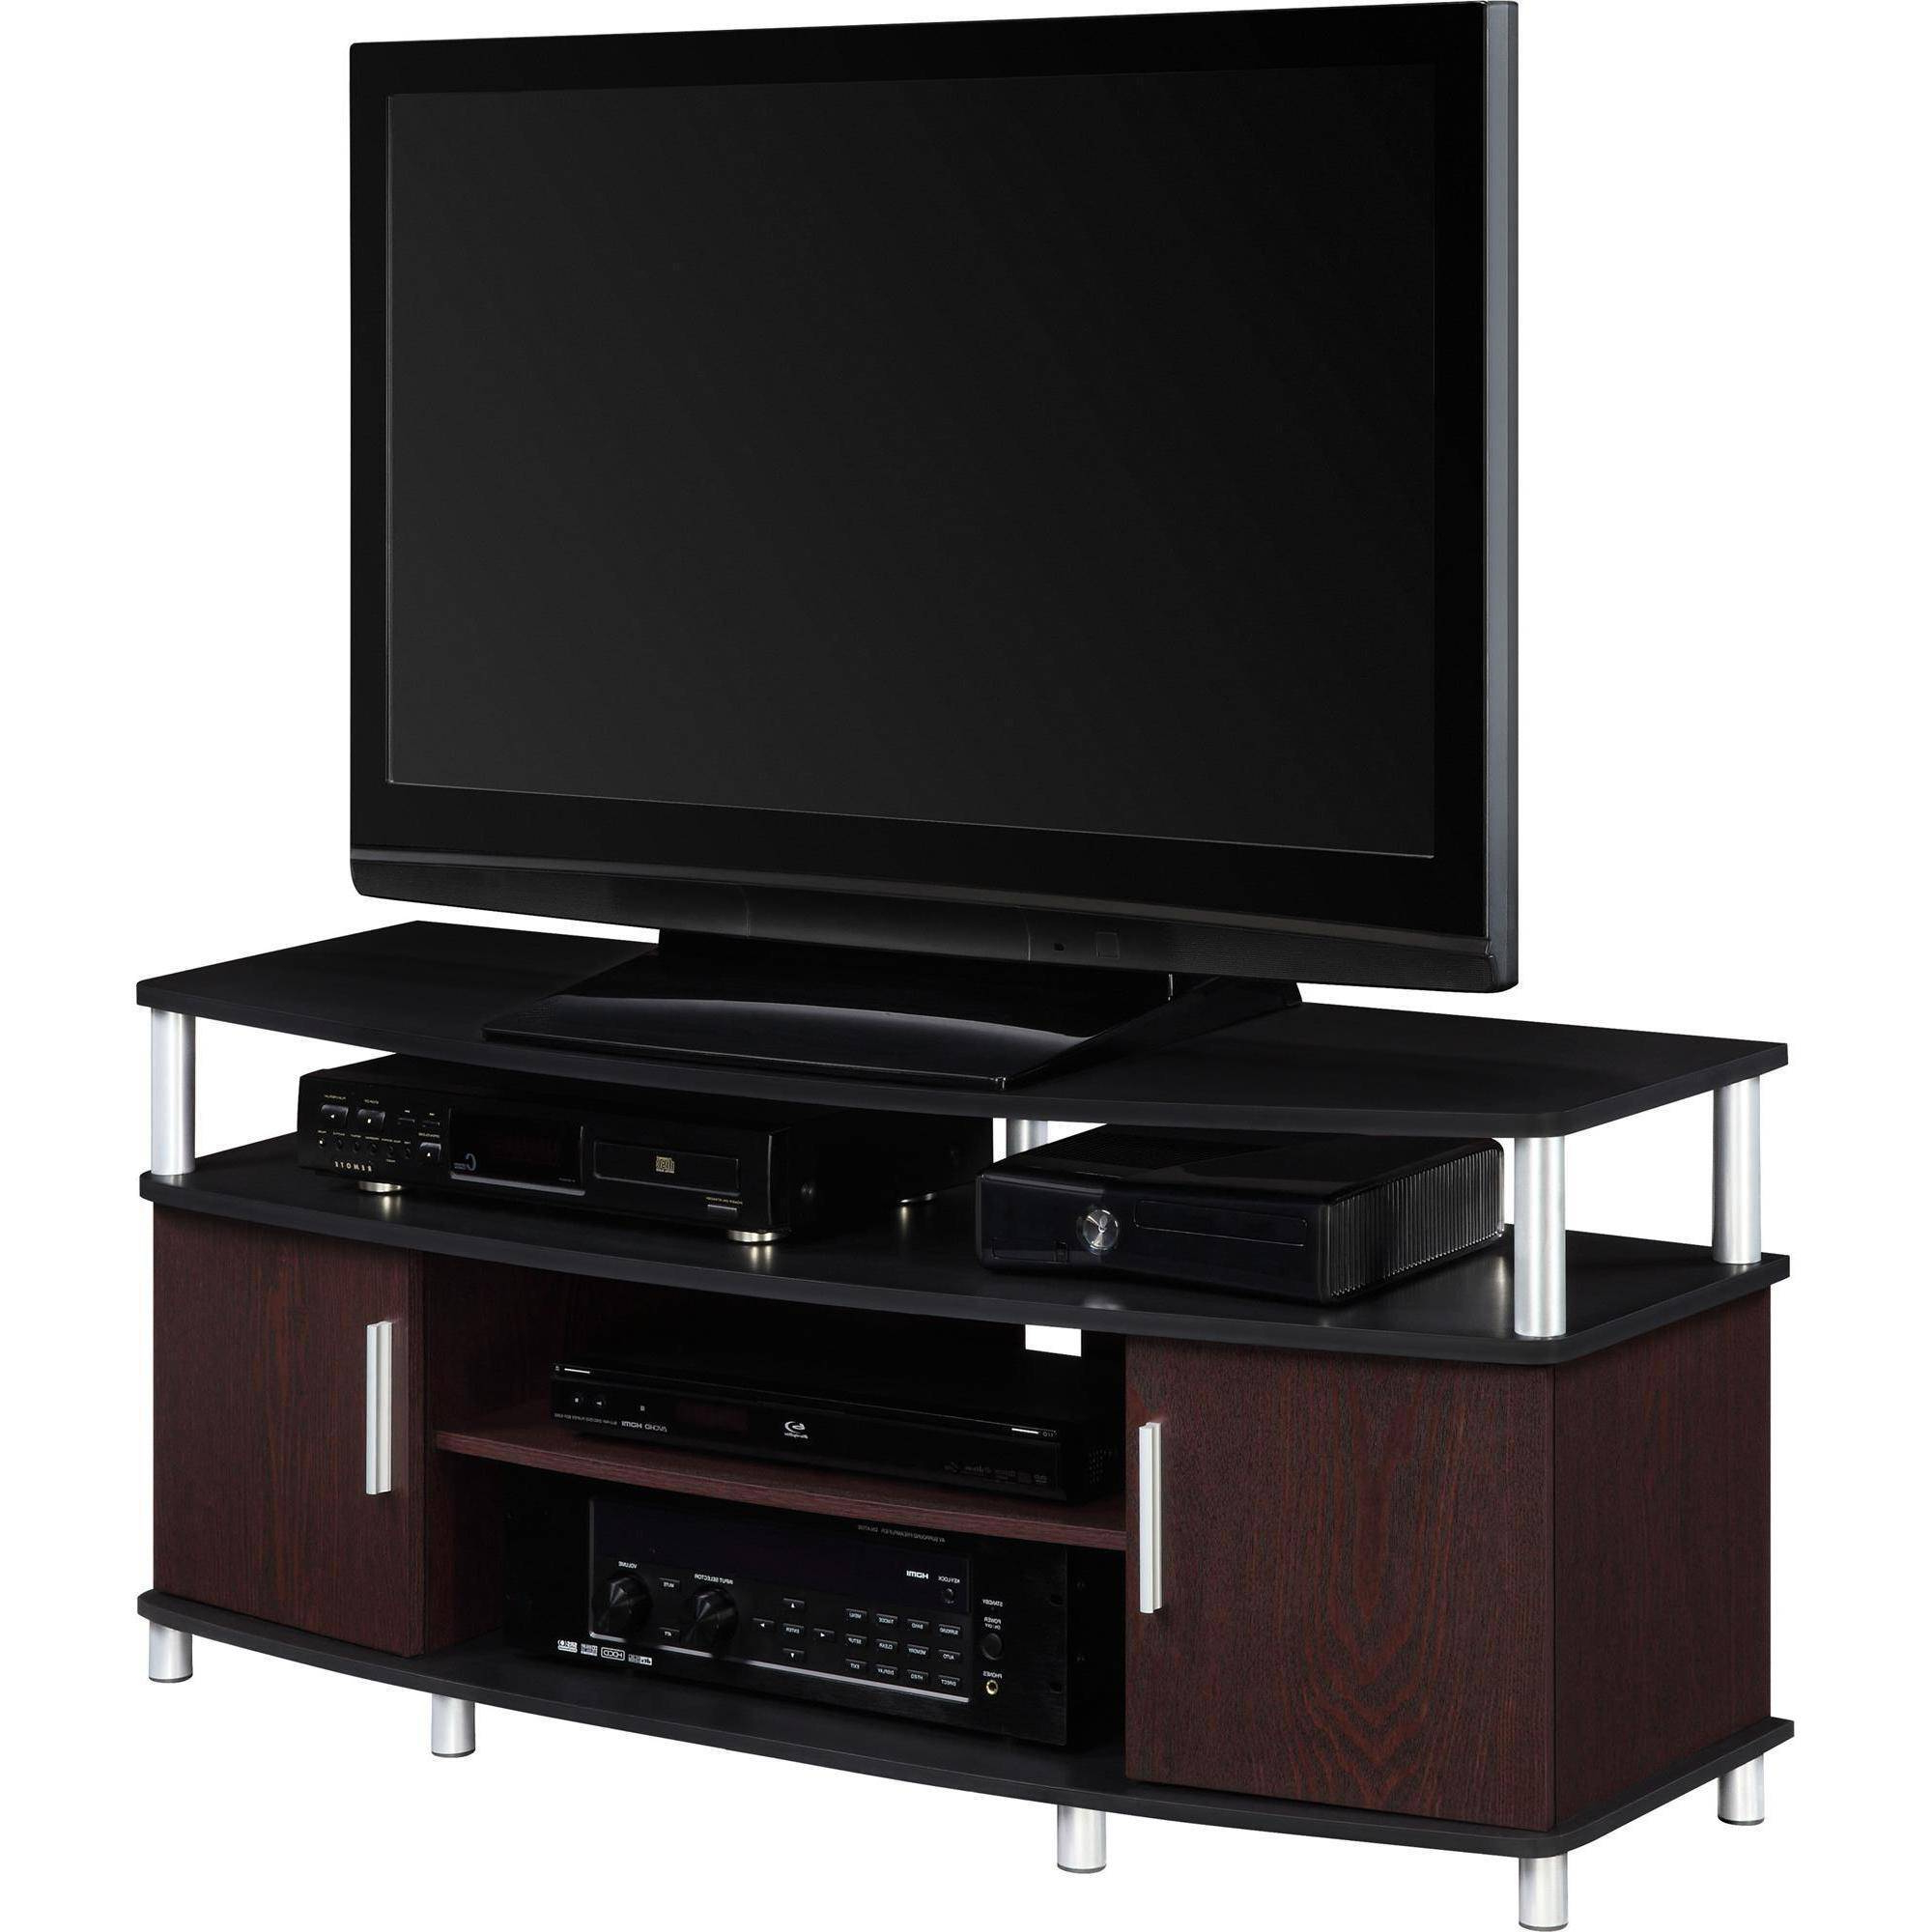 "2018 Tv Stands For 43 Inch Tv With Regard To Carson Tv Stand, For Tvs Up To 50"", Multiple Finishes – Walmart (Gallery 1 of 20)"